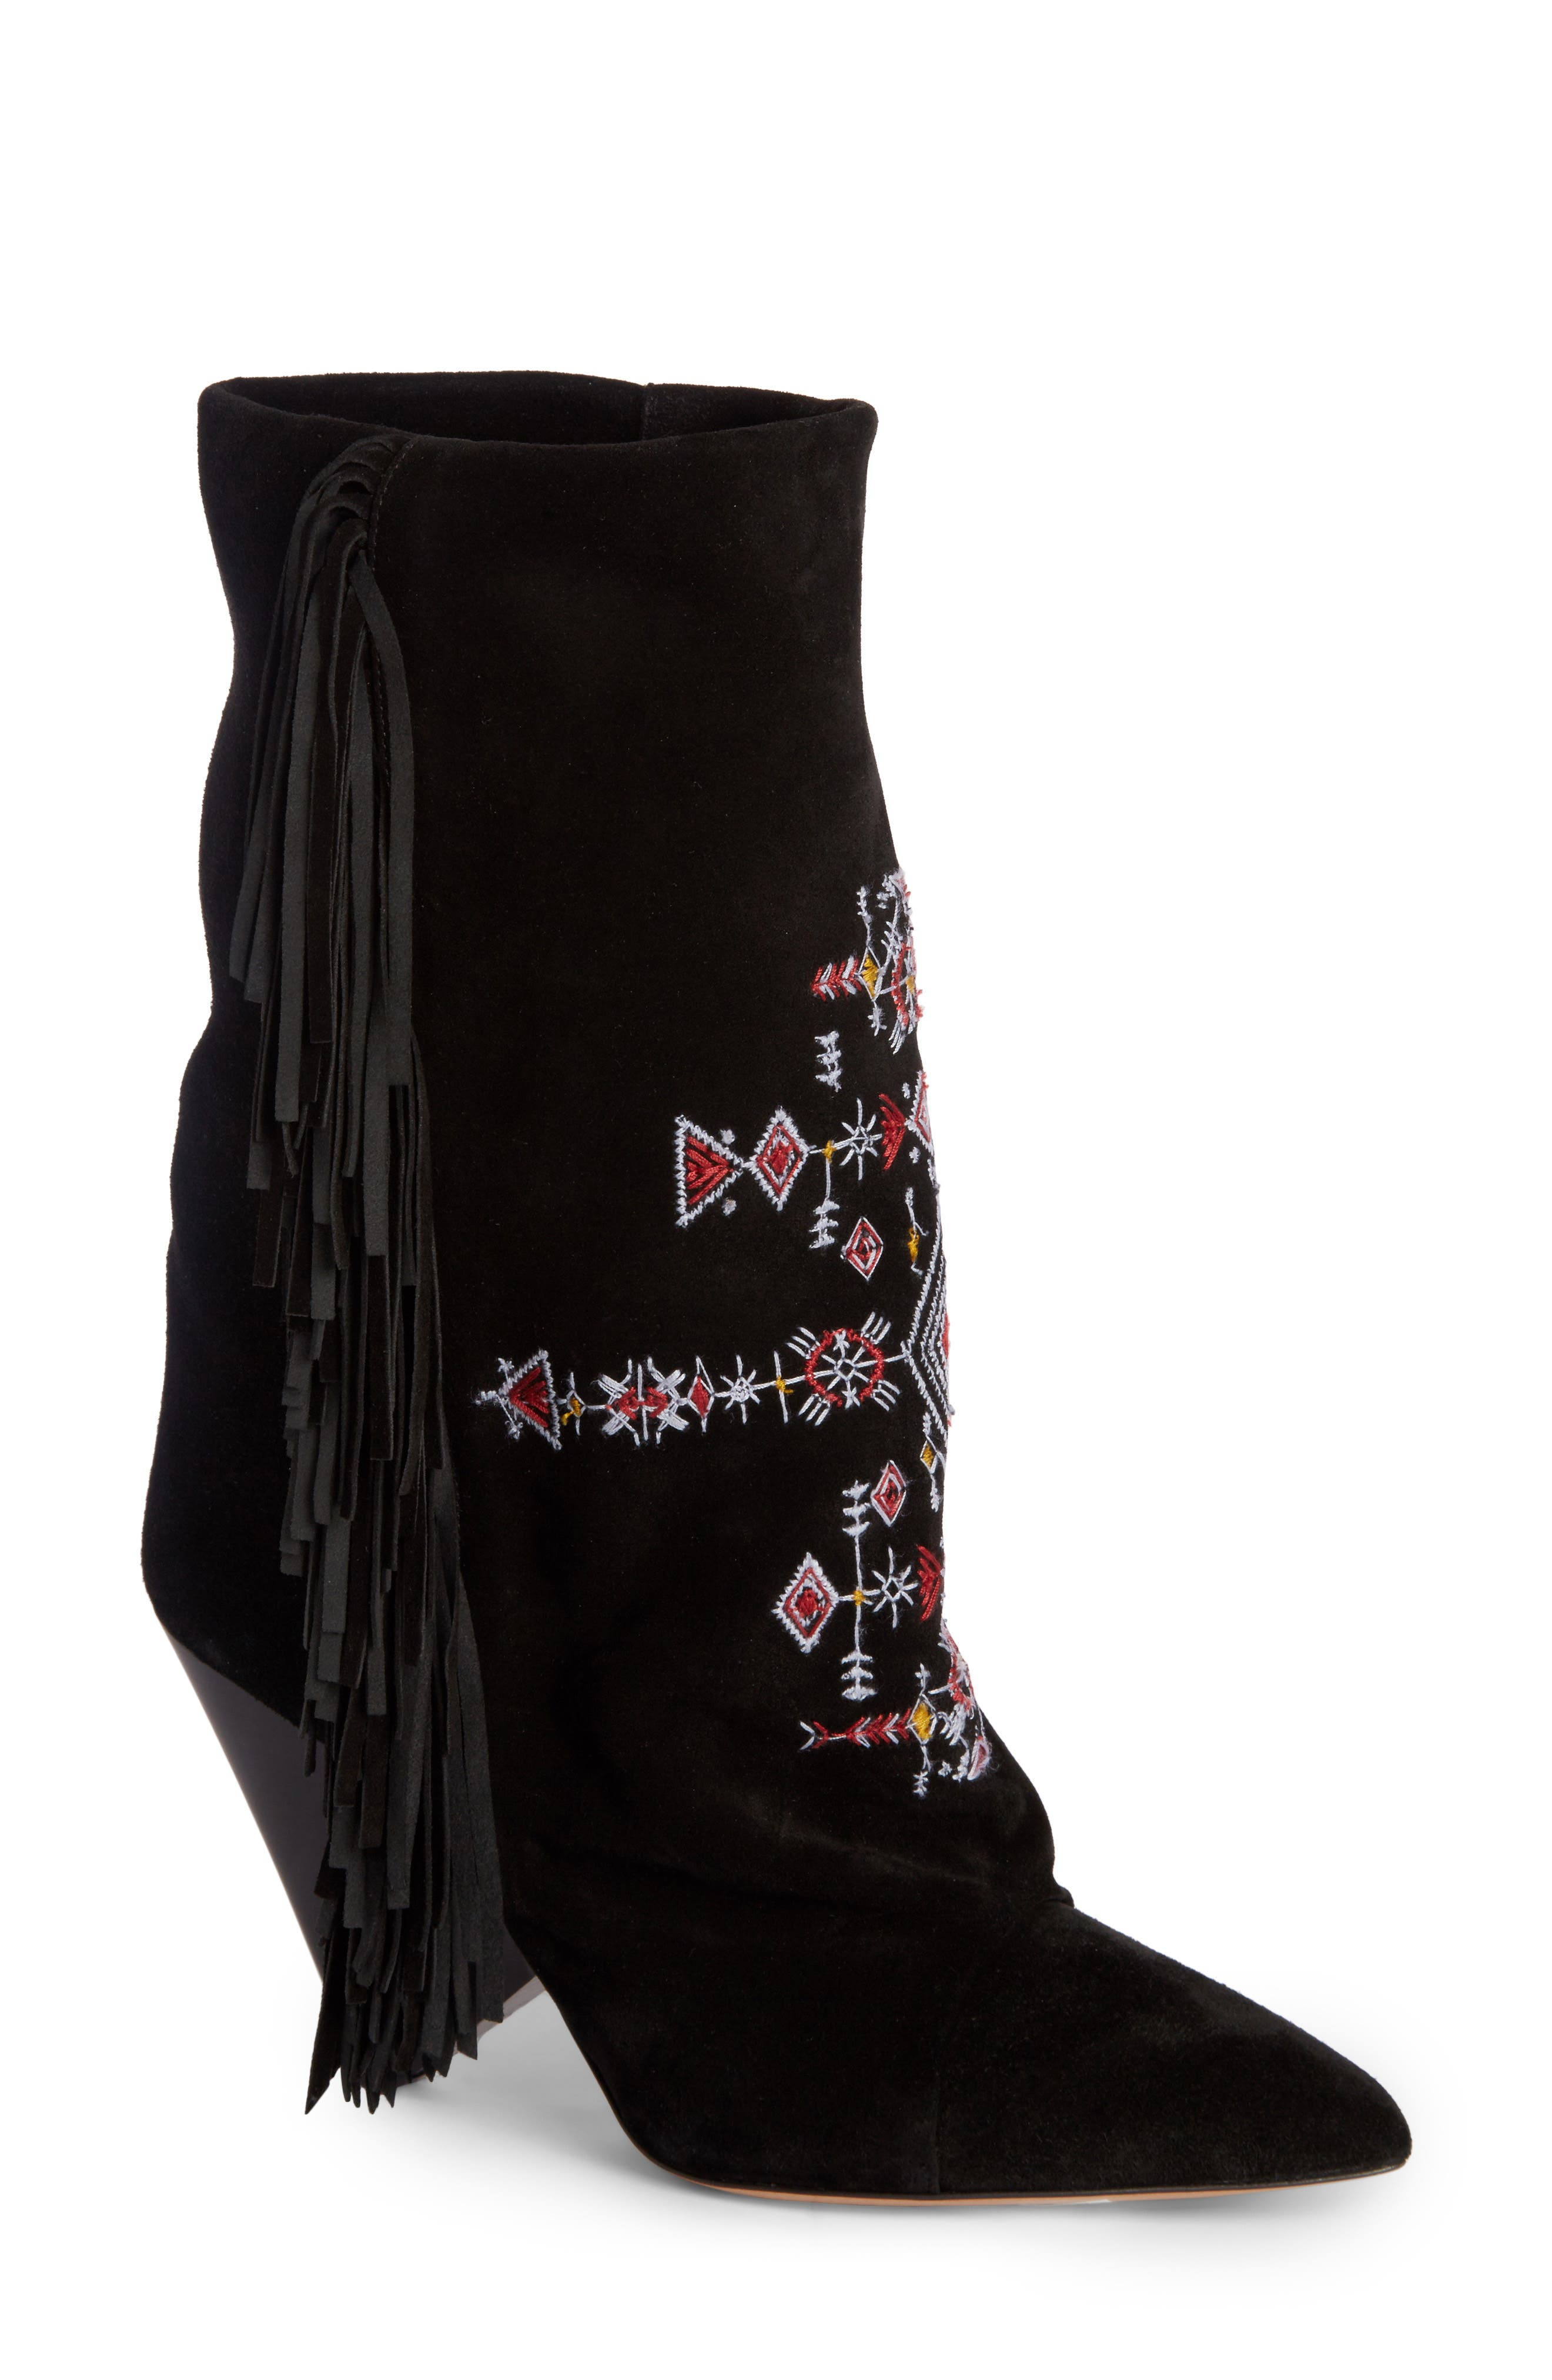 Main Image - Isabel Marant Lesten Embroidered Fringe Boot (Women)